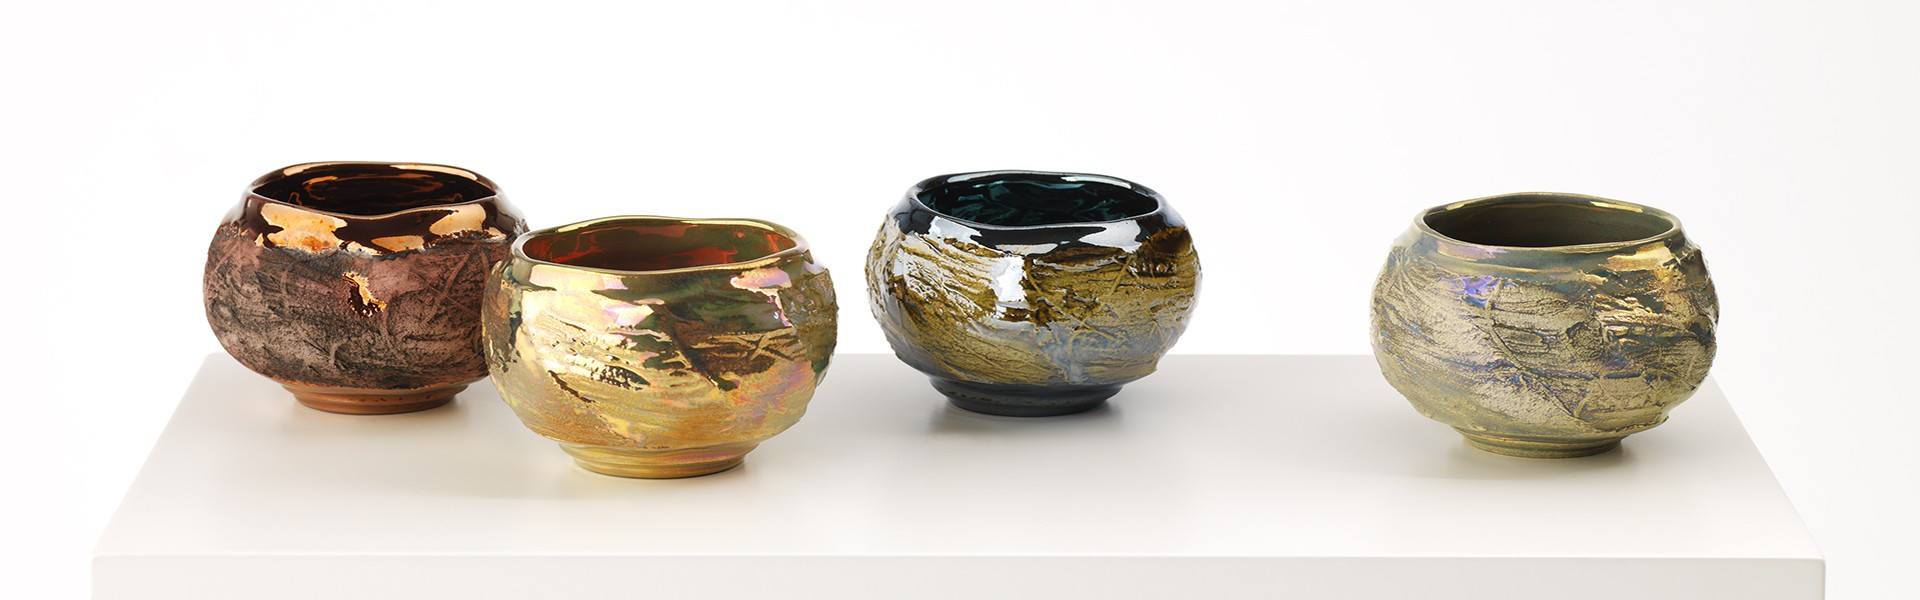 Textured Faceted Bowls glazed with in glaze lustre inspired by frozen water